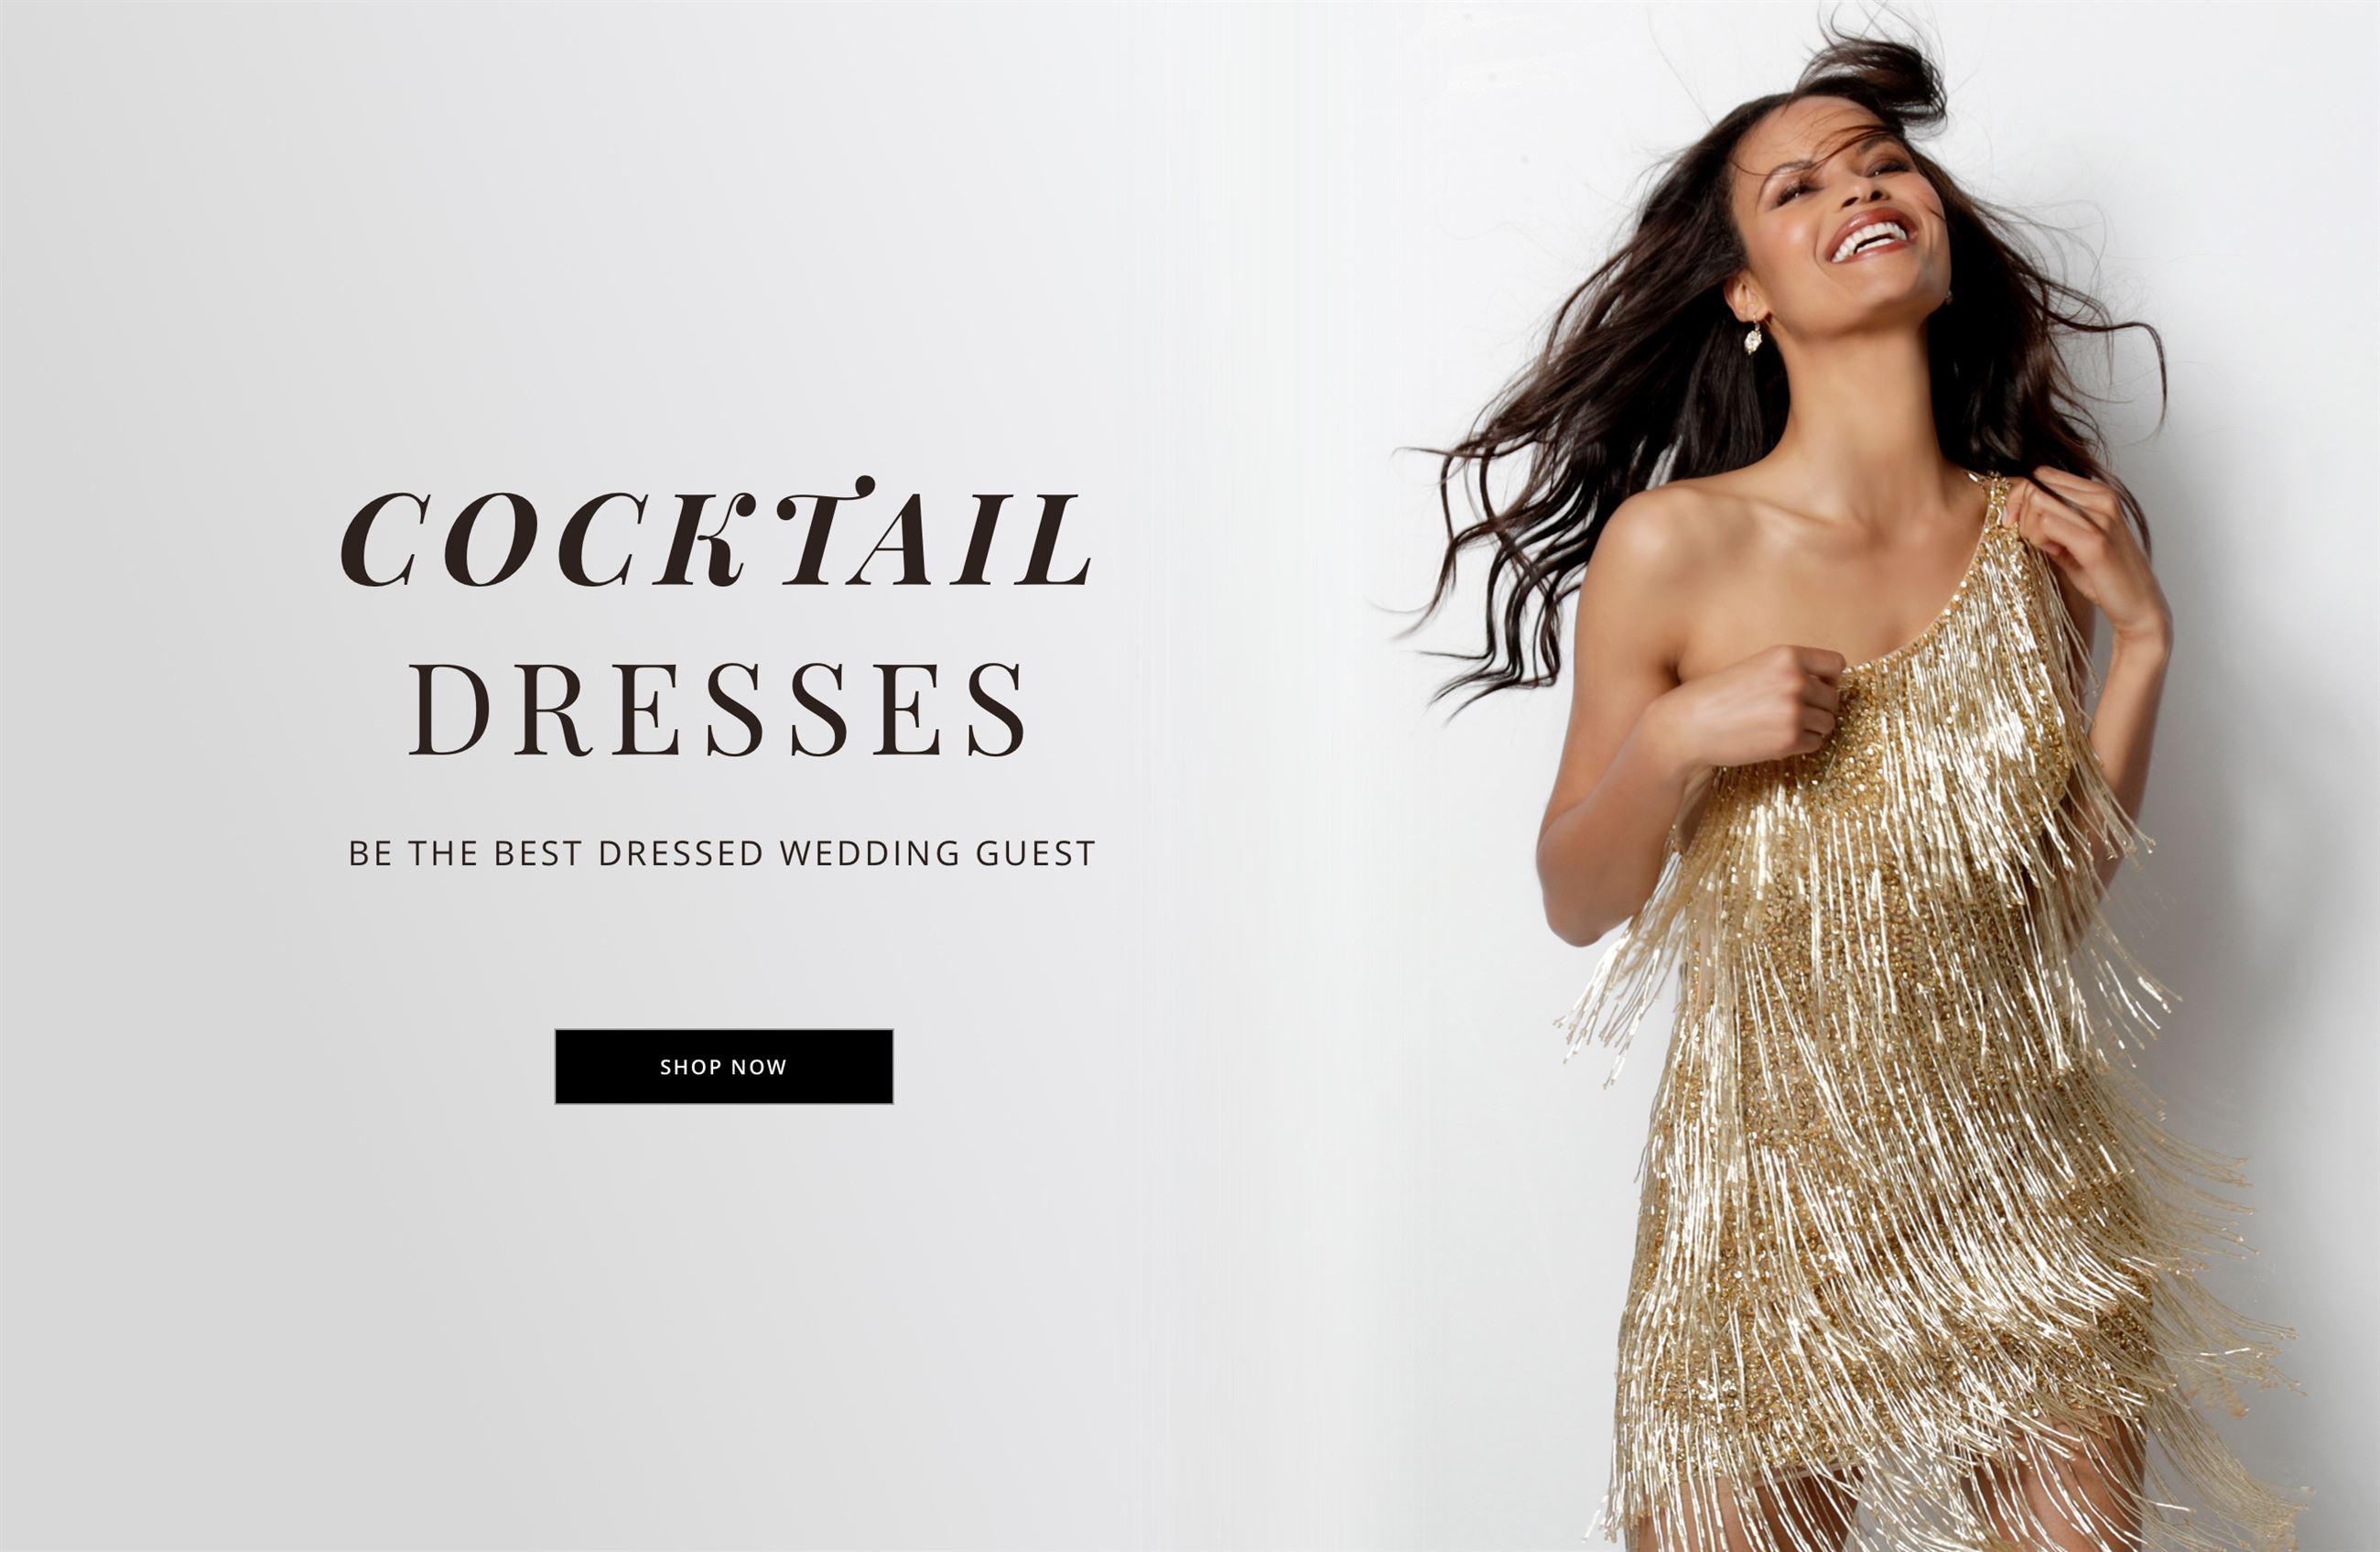 gold fringe cocktail dresses whatchamacallit dallas and fort worth texas